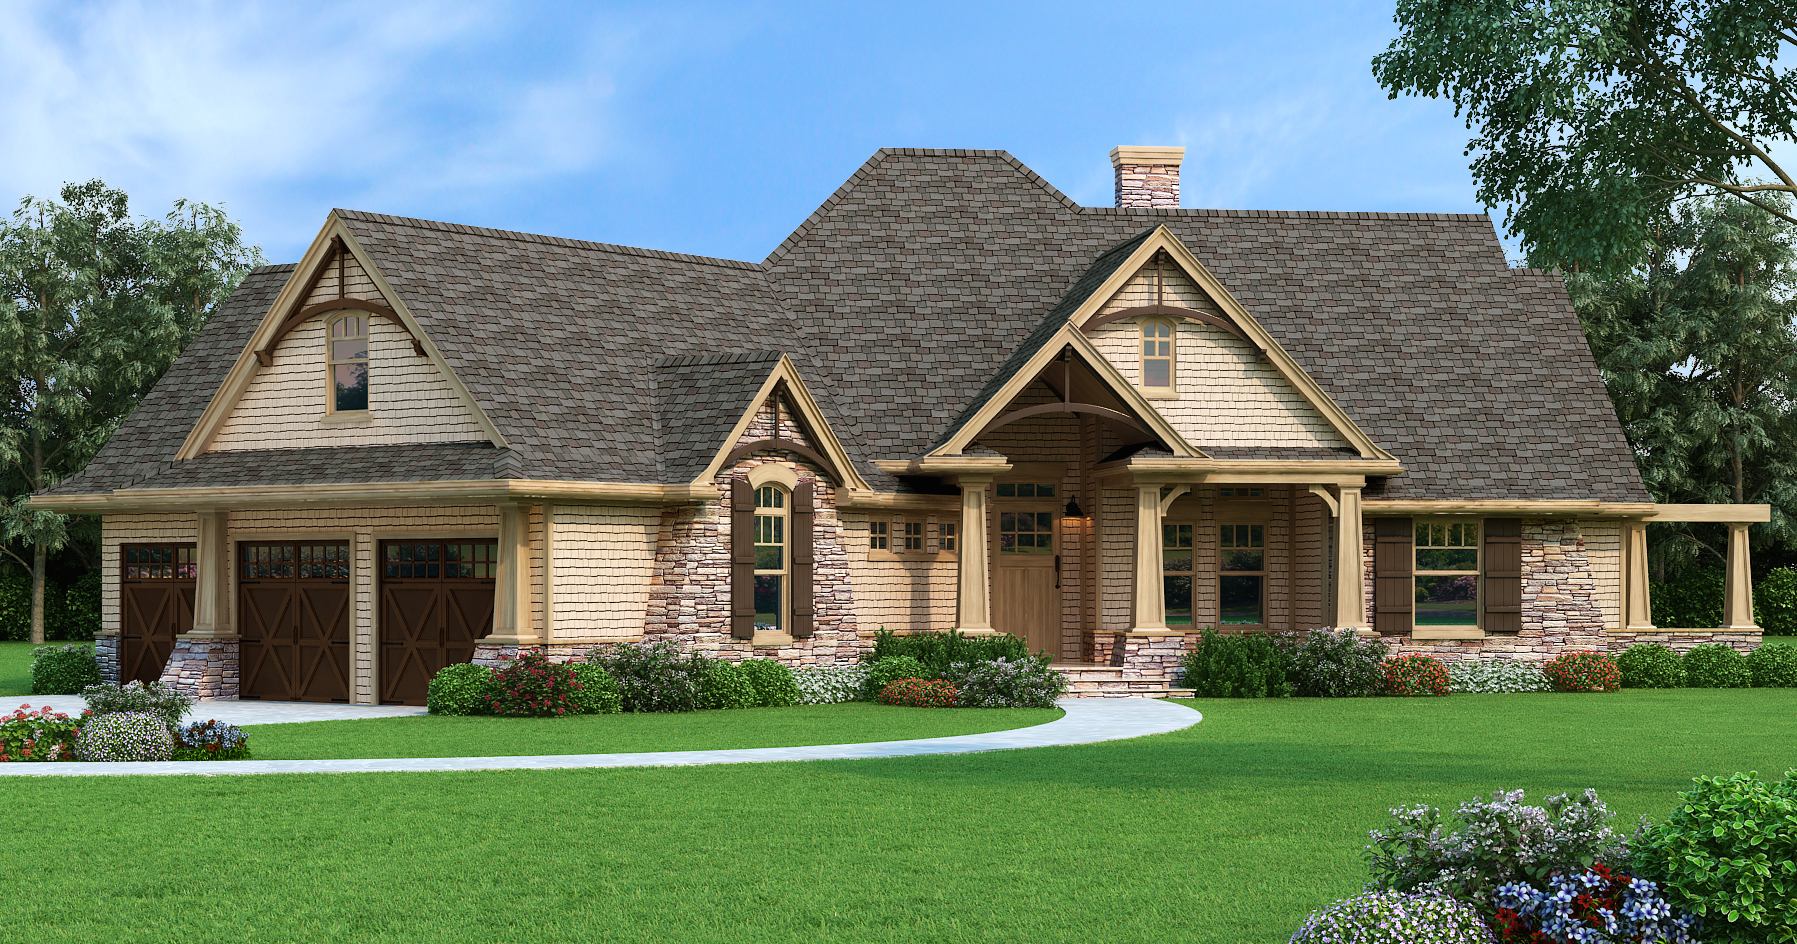 best farmhouse plans the house designers showcases popular house plan in affordable and luxury build options 8125